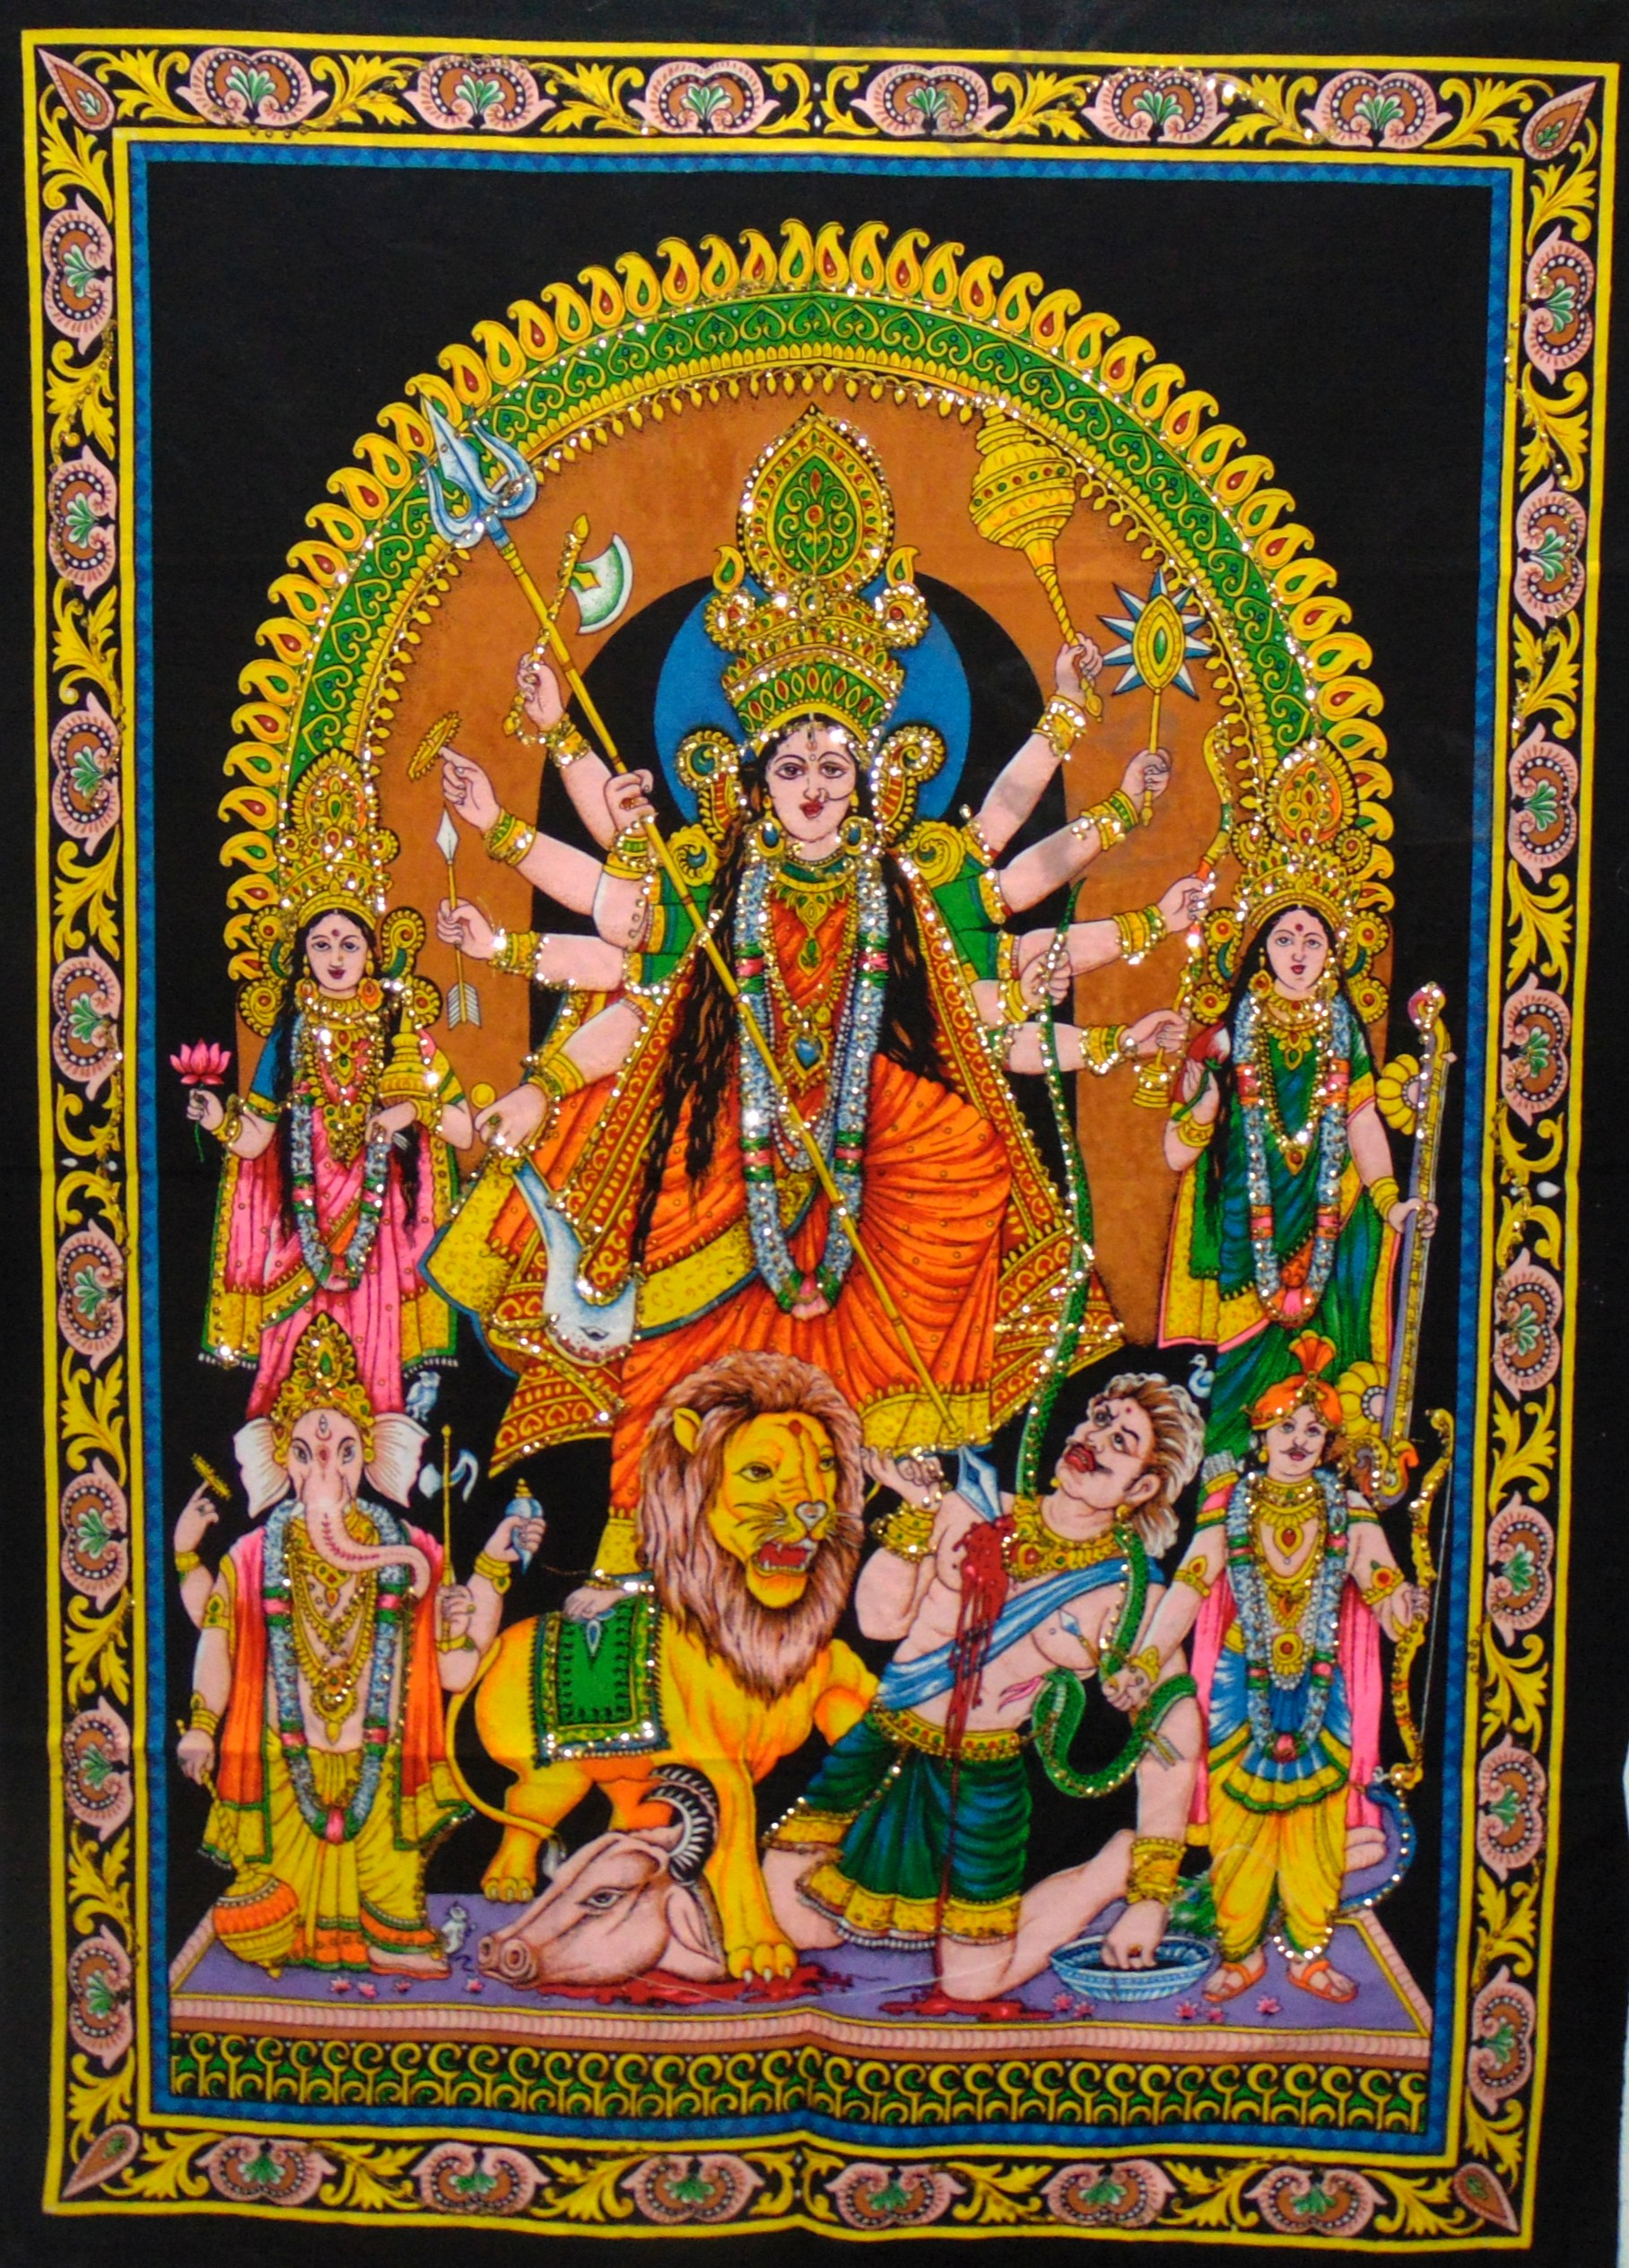 Heyrumbh Handicrafts Godes Maa Durga Wall Hanging Tapestry Poster(Brush Paint Multi Color, 40 X 30 Inches)